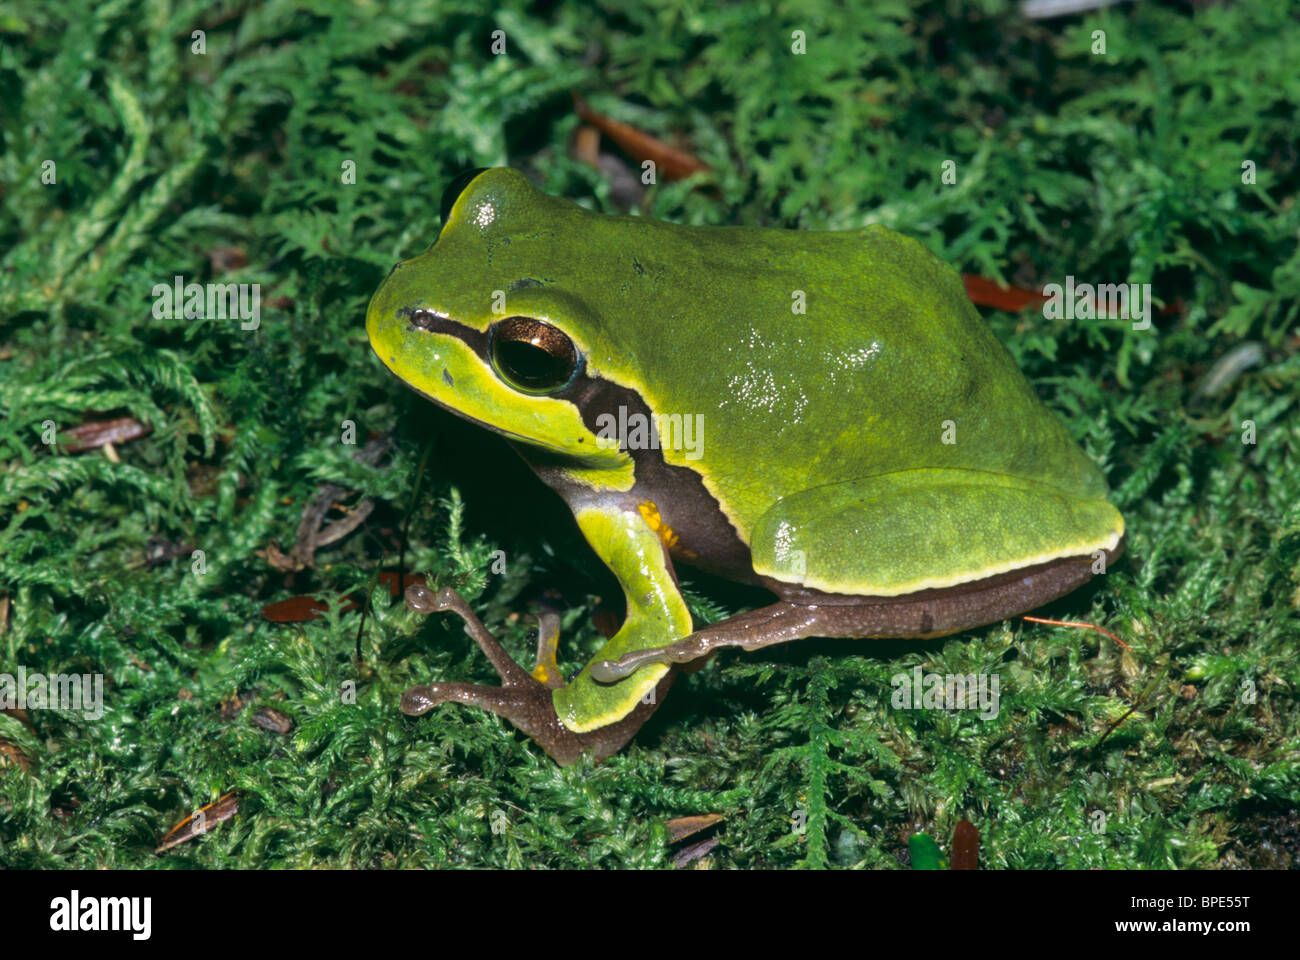 Pine Barrens Tree Frog (Hyla andersonii) in moss New Jersey USA Stock Photo